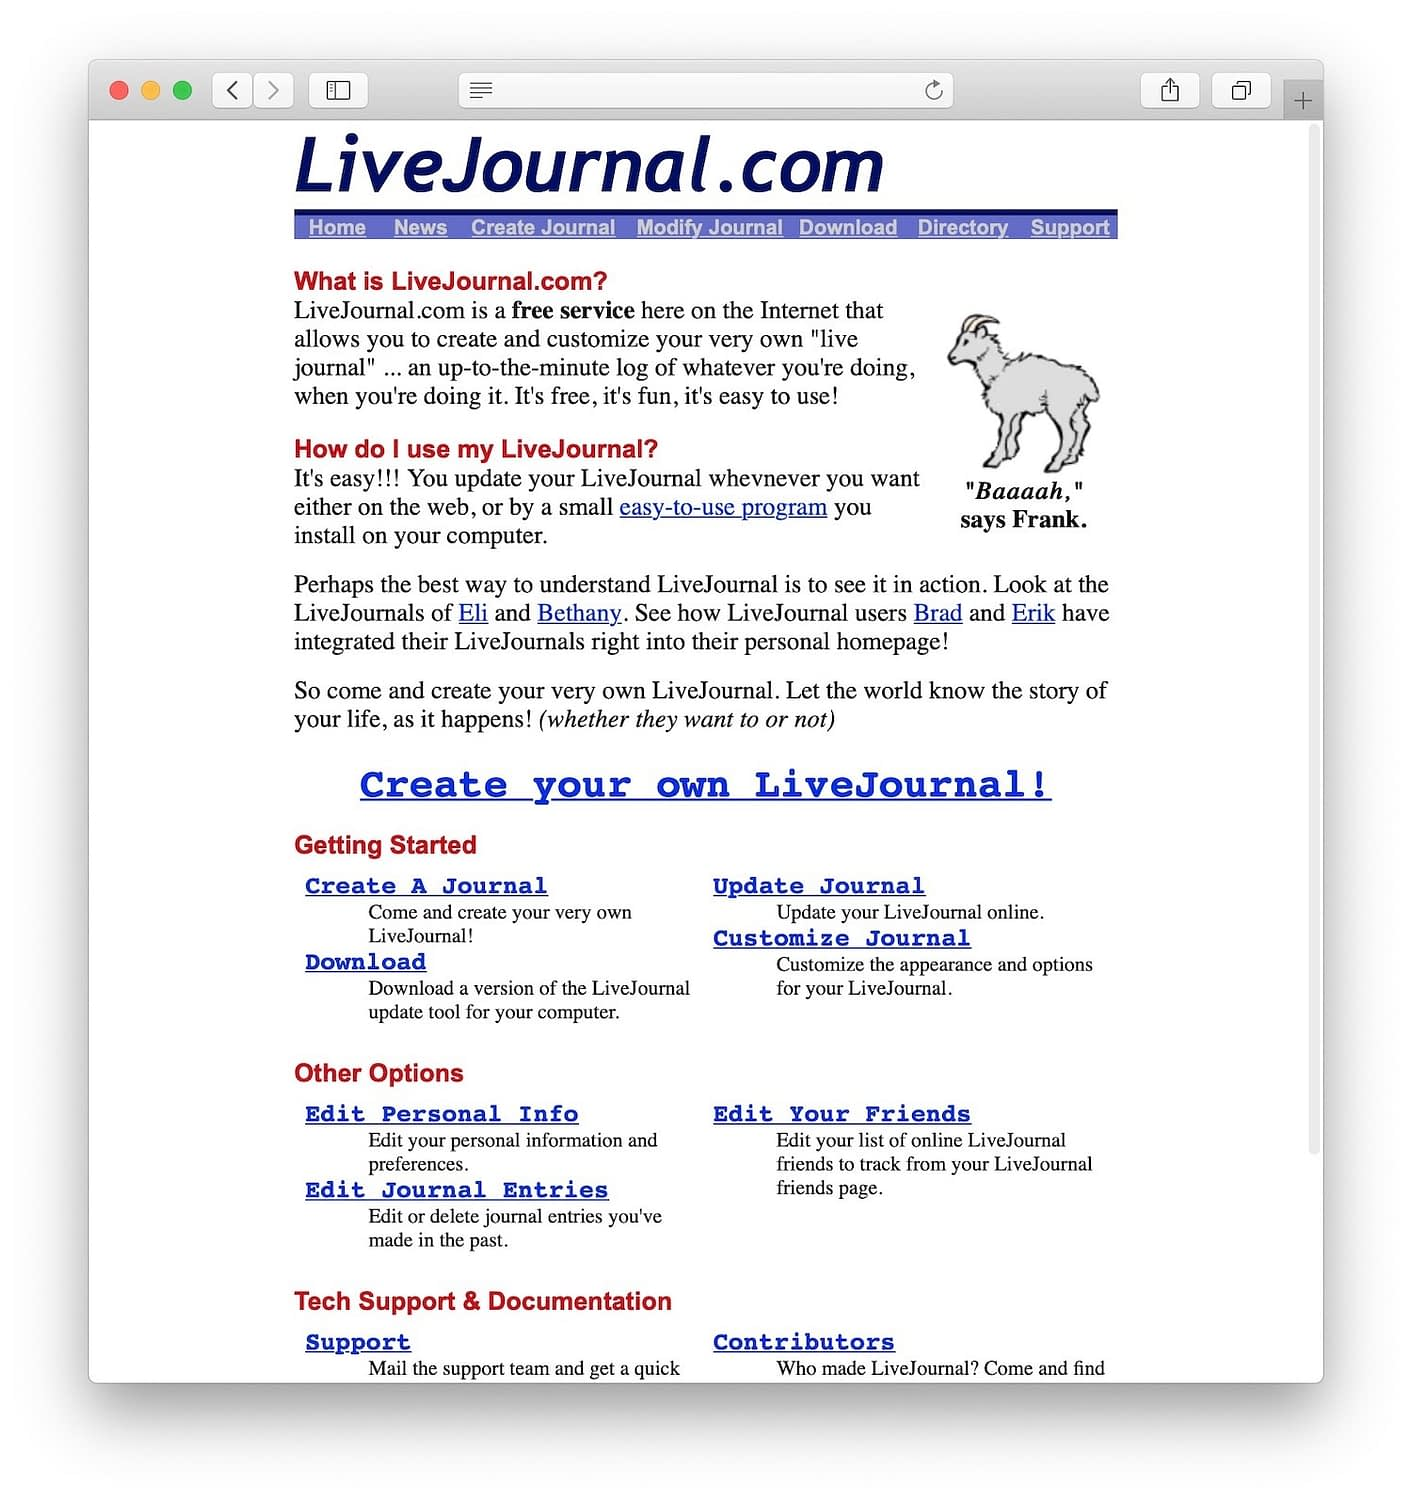 LiveJournal was one of the first blogging platforms in history